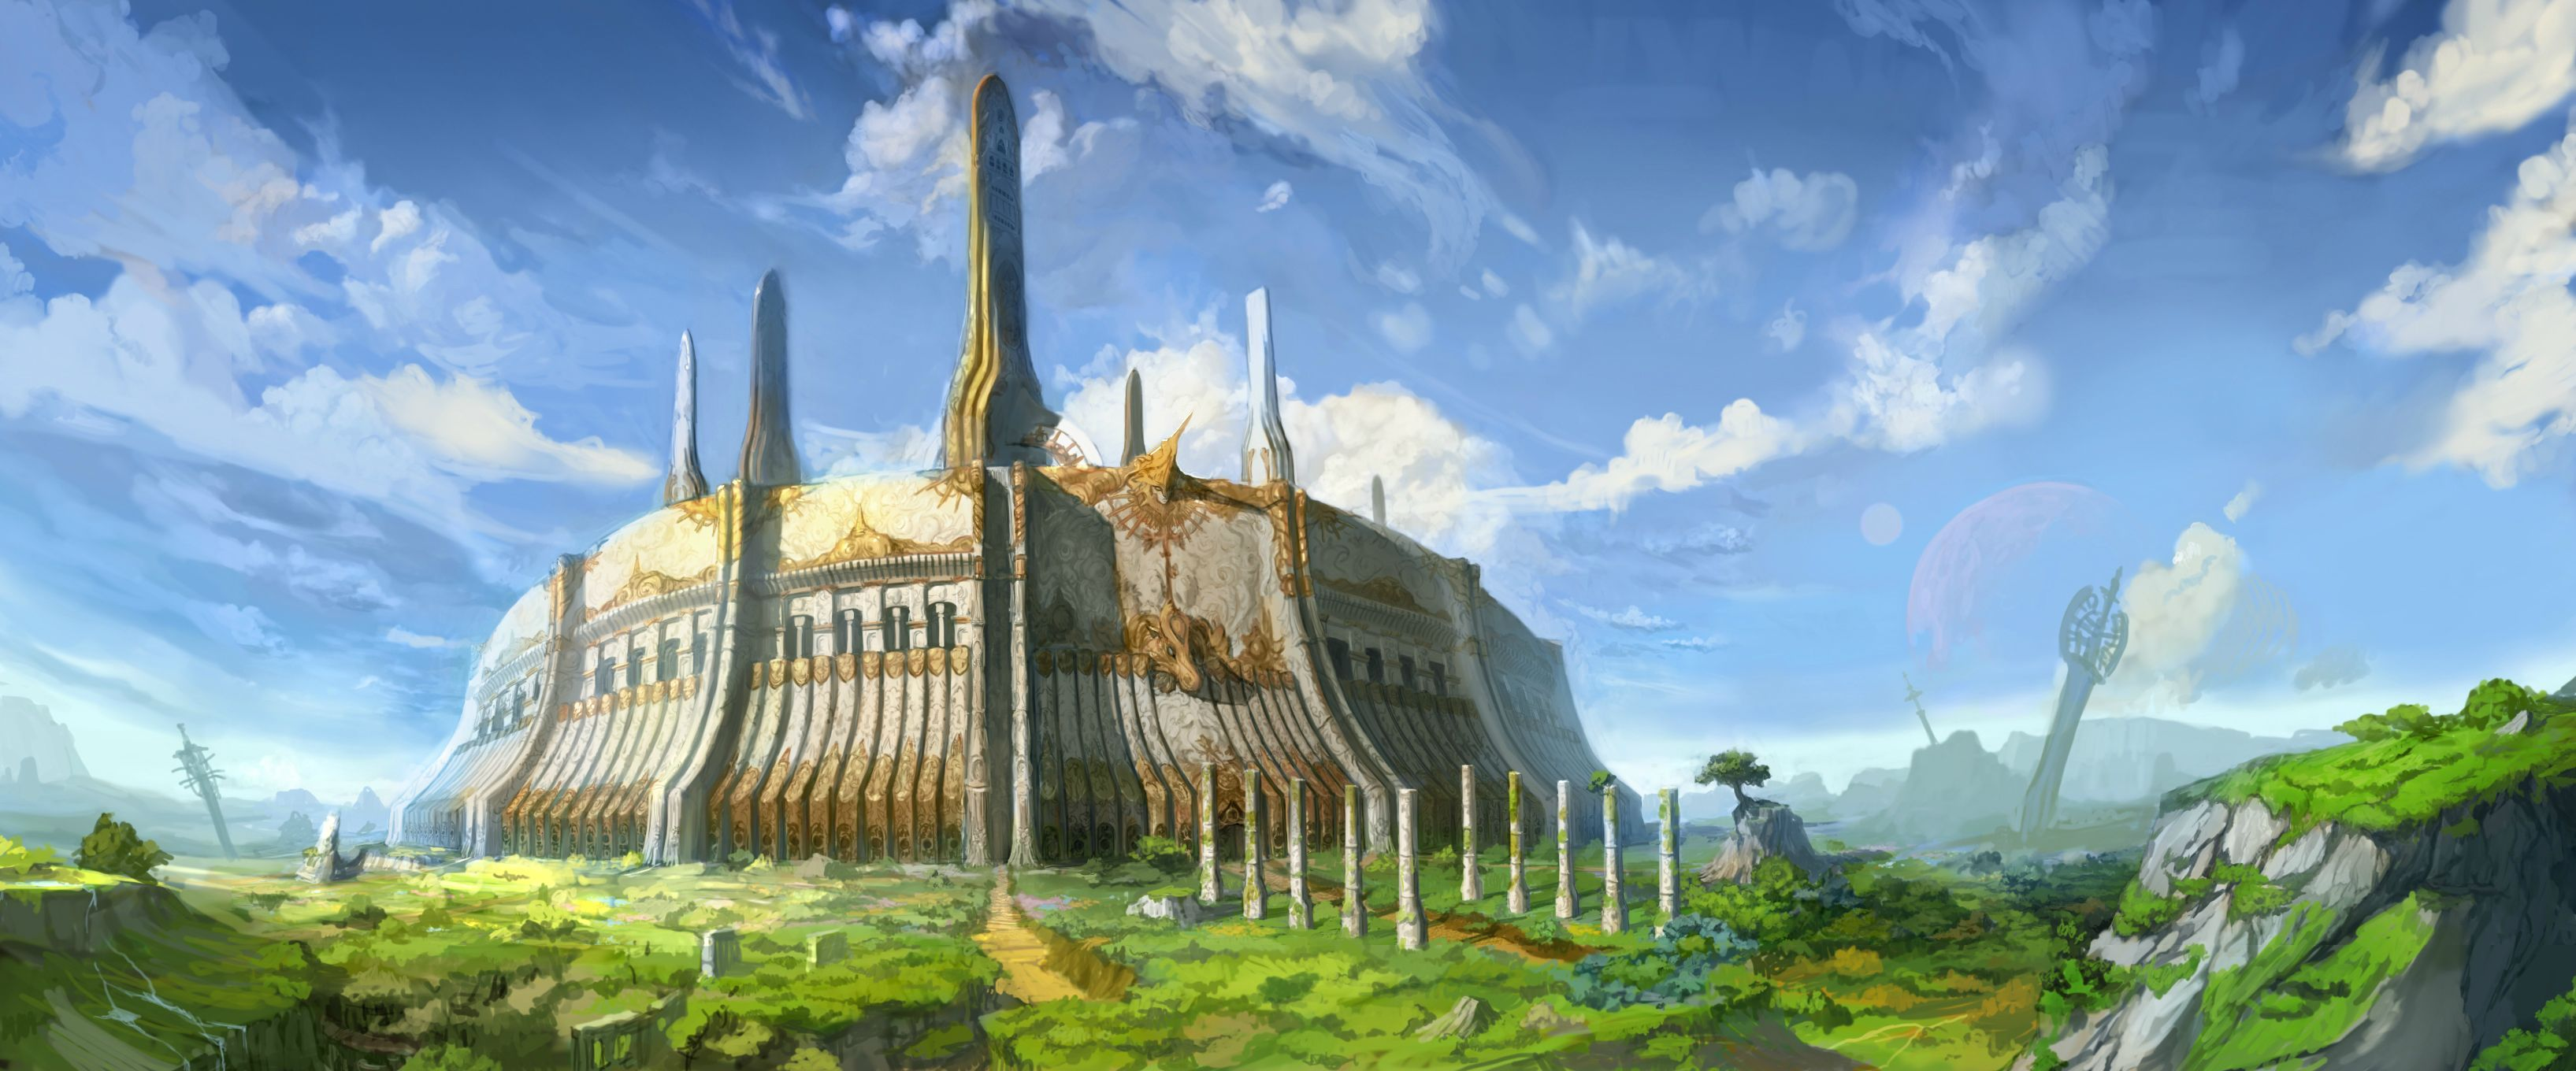 Concept Art Imperial City Valhalla via Reddit user Nidde